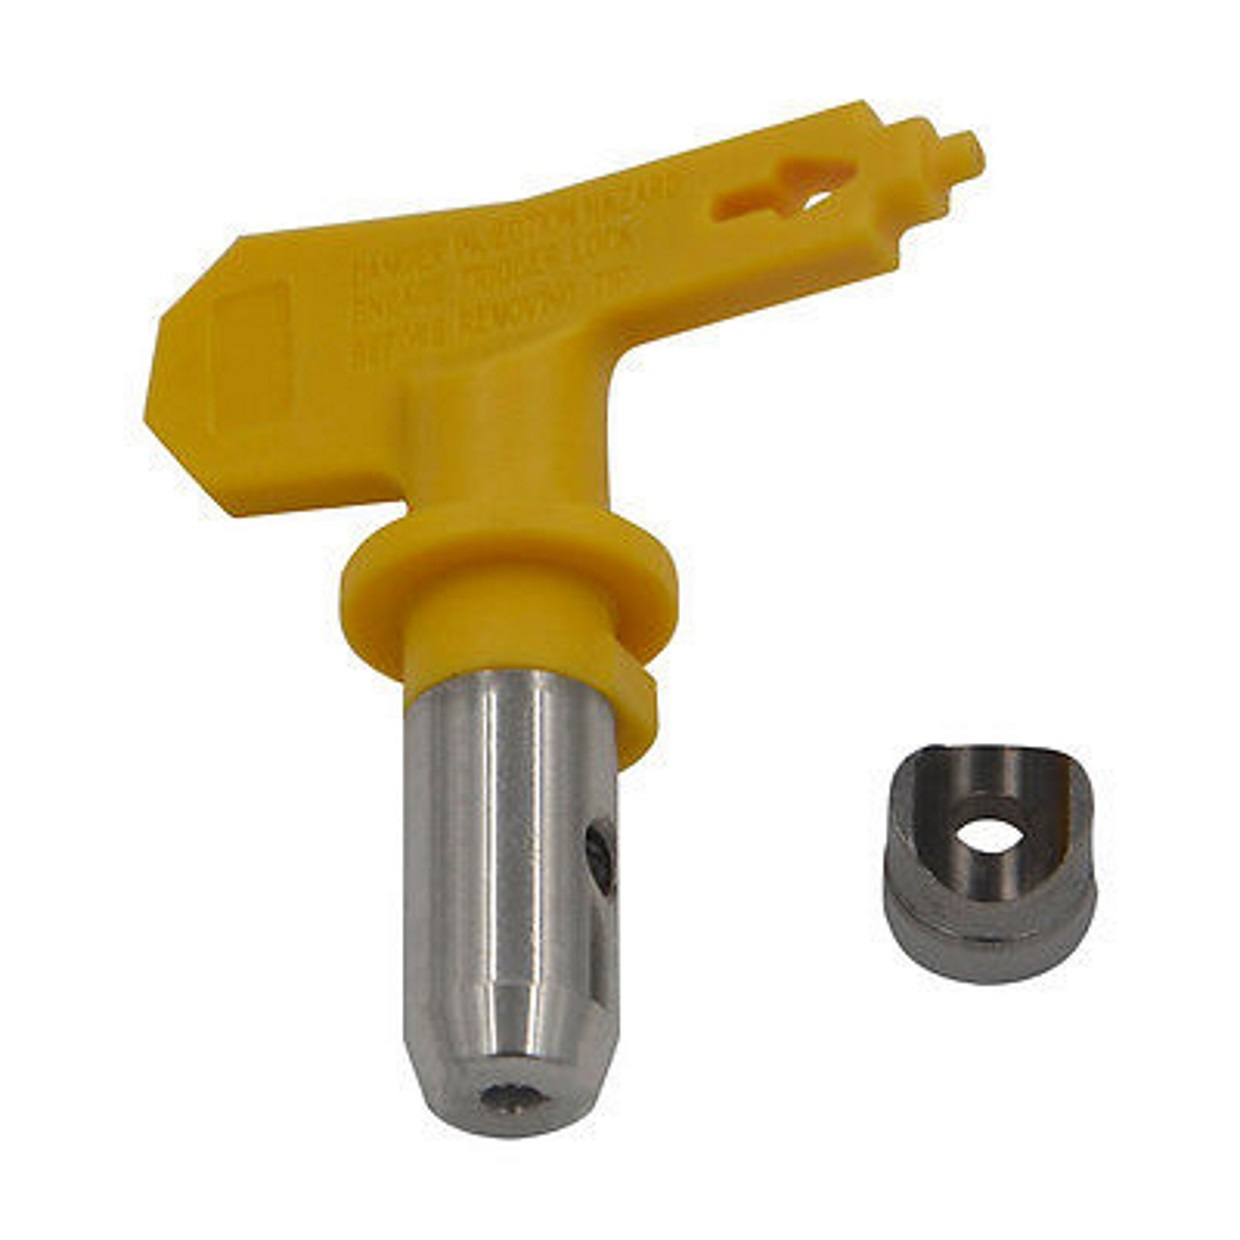 AIRLESS 415 PAINT SPRAY TIP FOR PAINT SPRAYERS